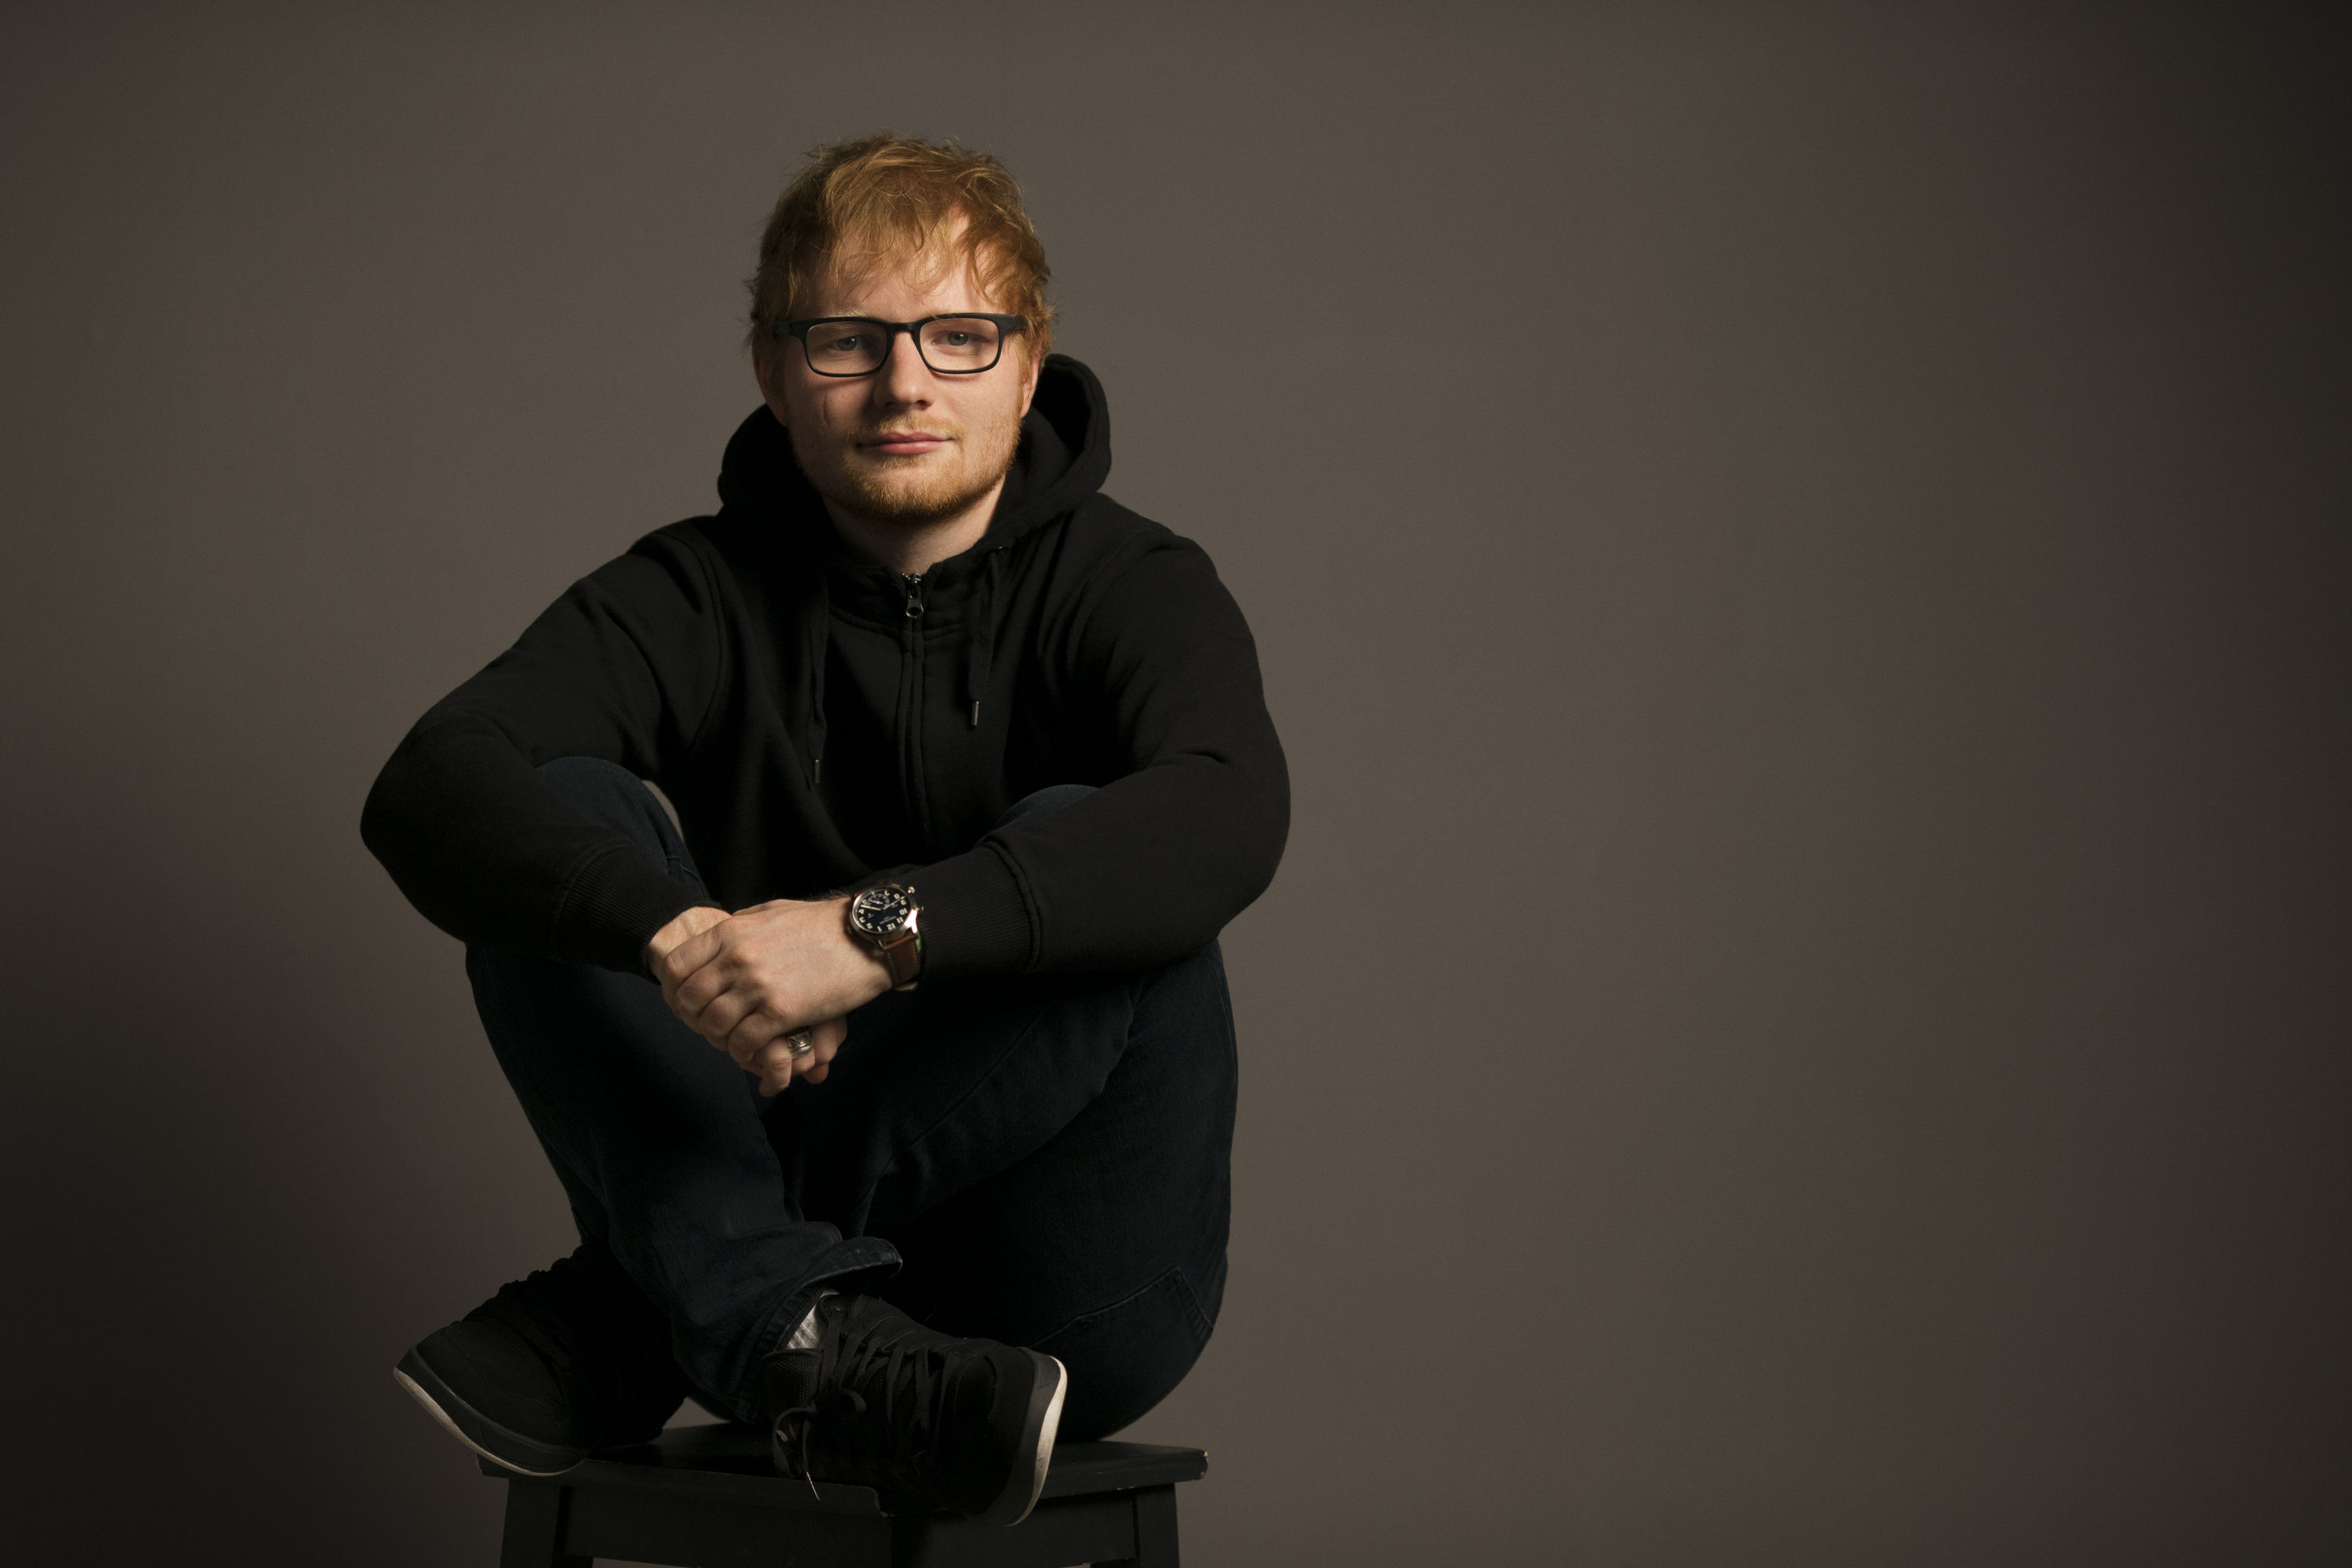 https://www.theplace.ru/archive/ed_sheeran/img/2017_session_008.jpg